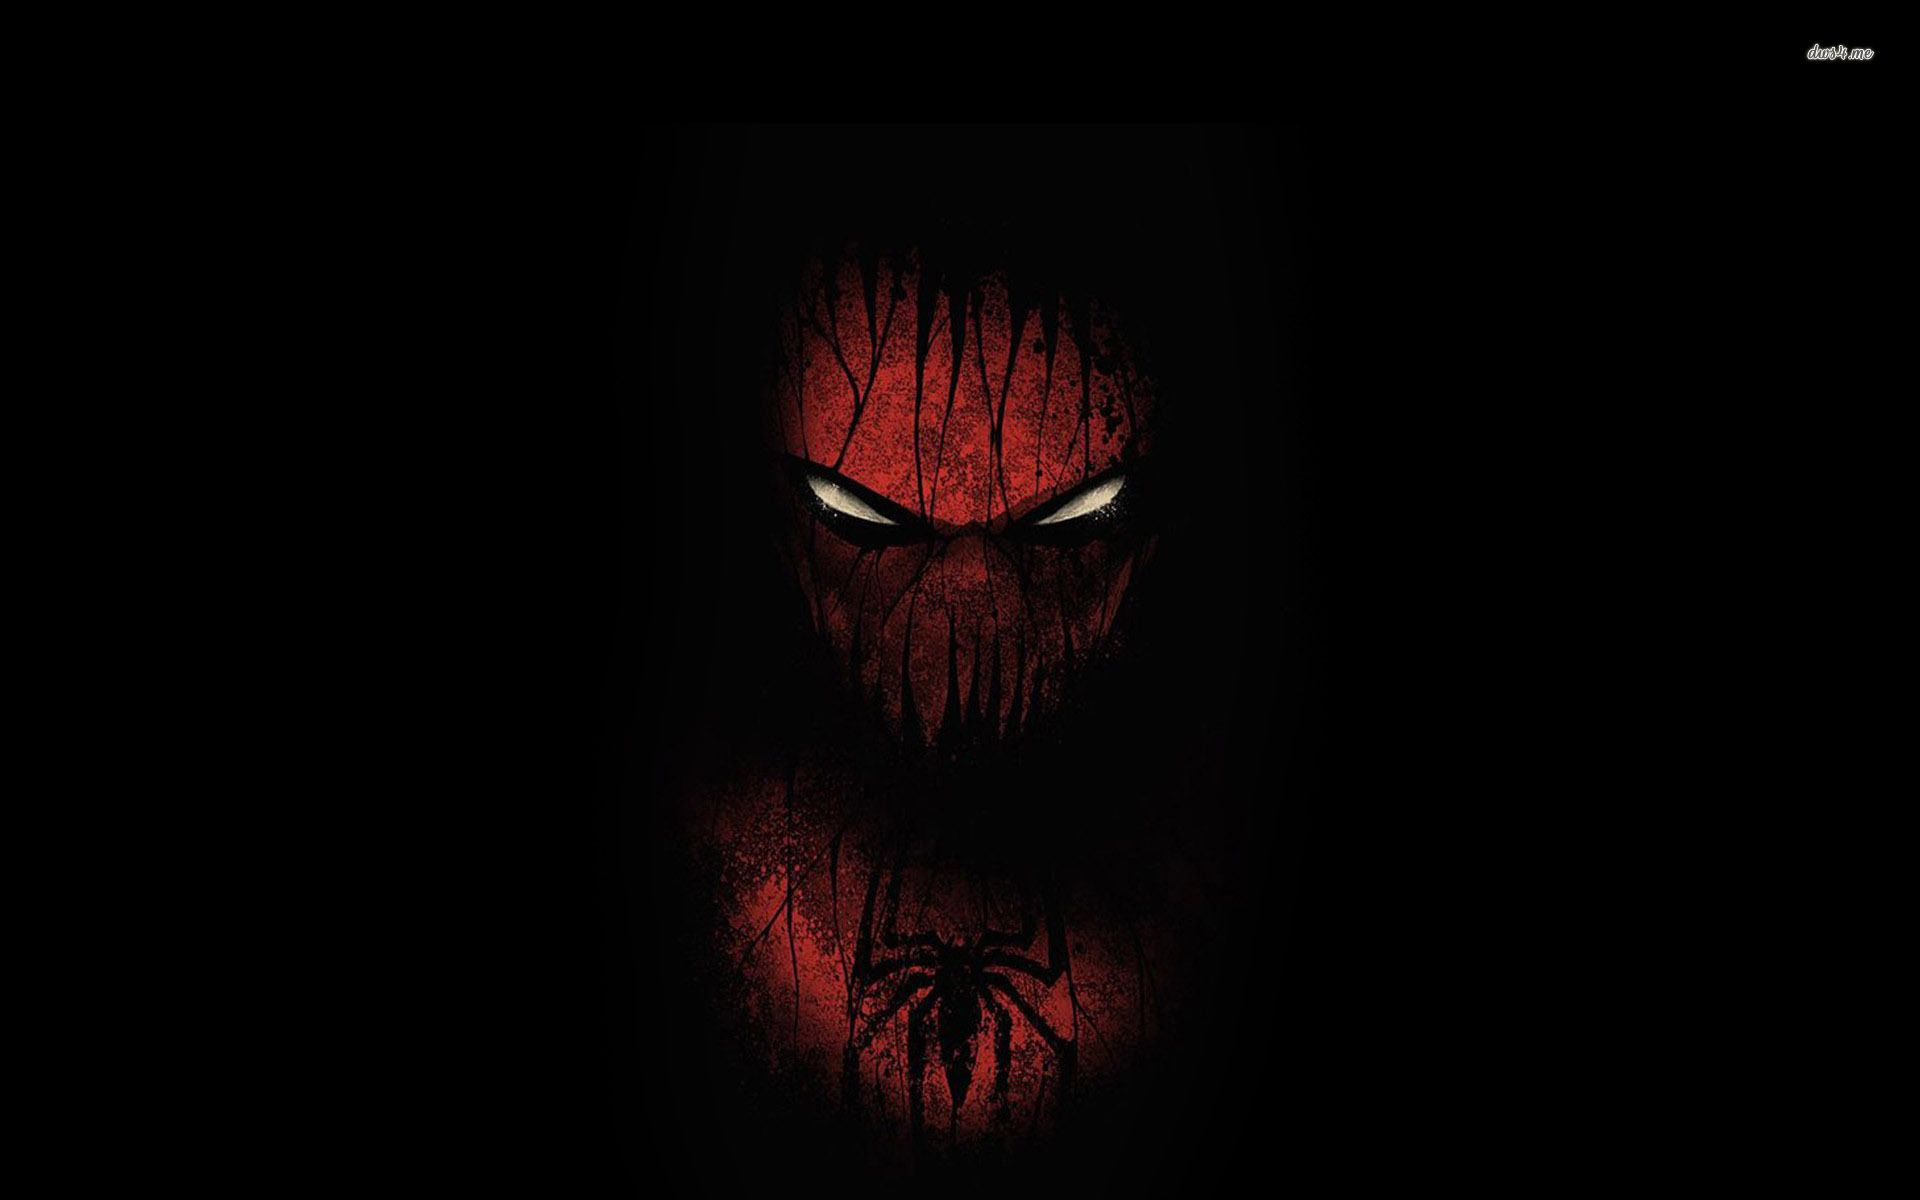 Spiderman Wallpaper For Pc Full Hd Pictures 1920 1200 Spiderman